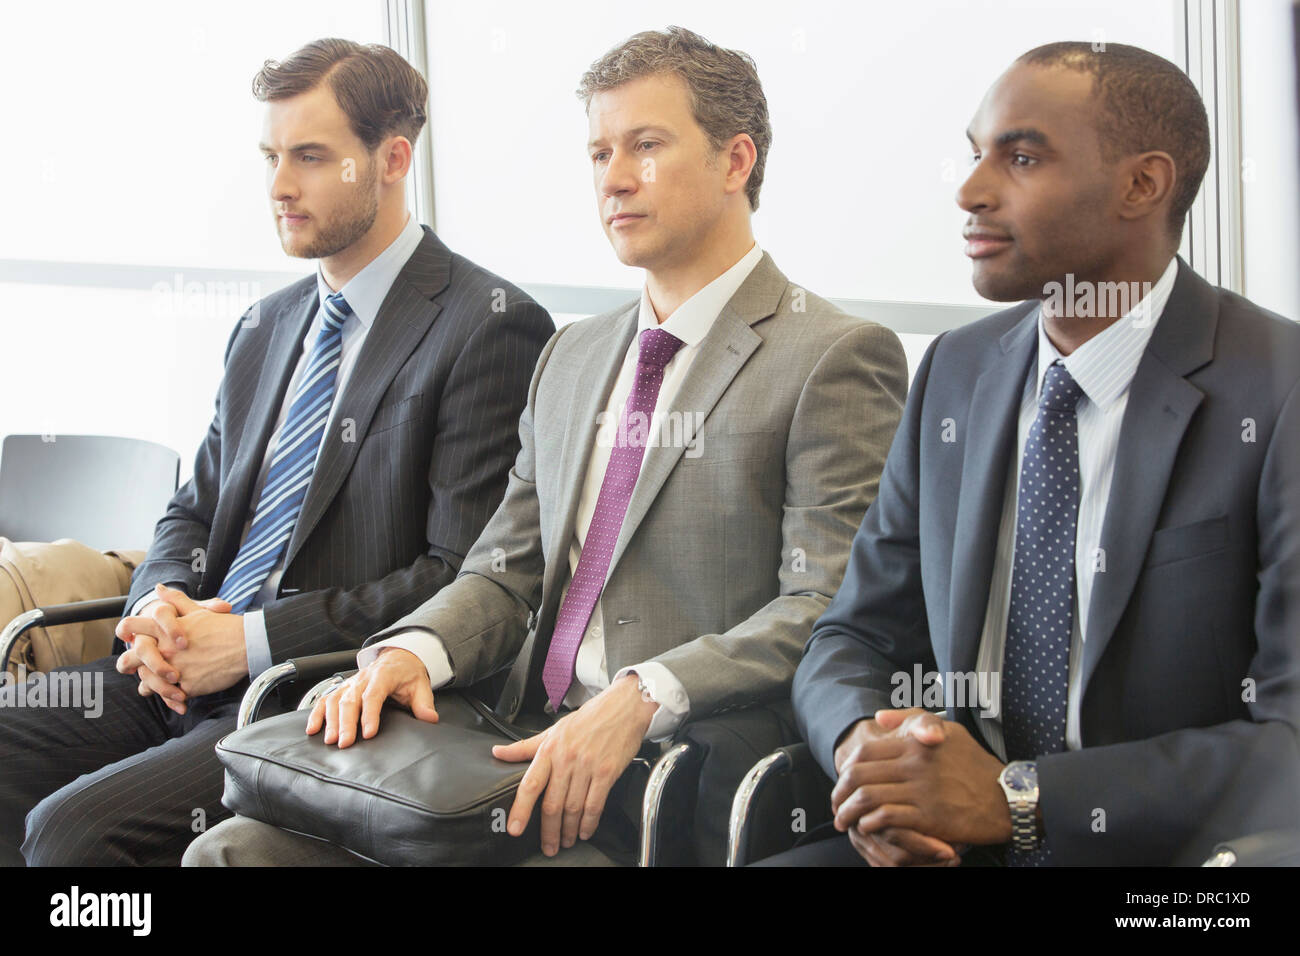 Businessmen sitting in waiting area - Stock Image